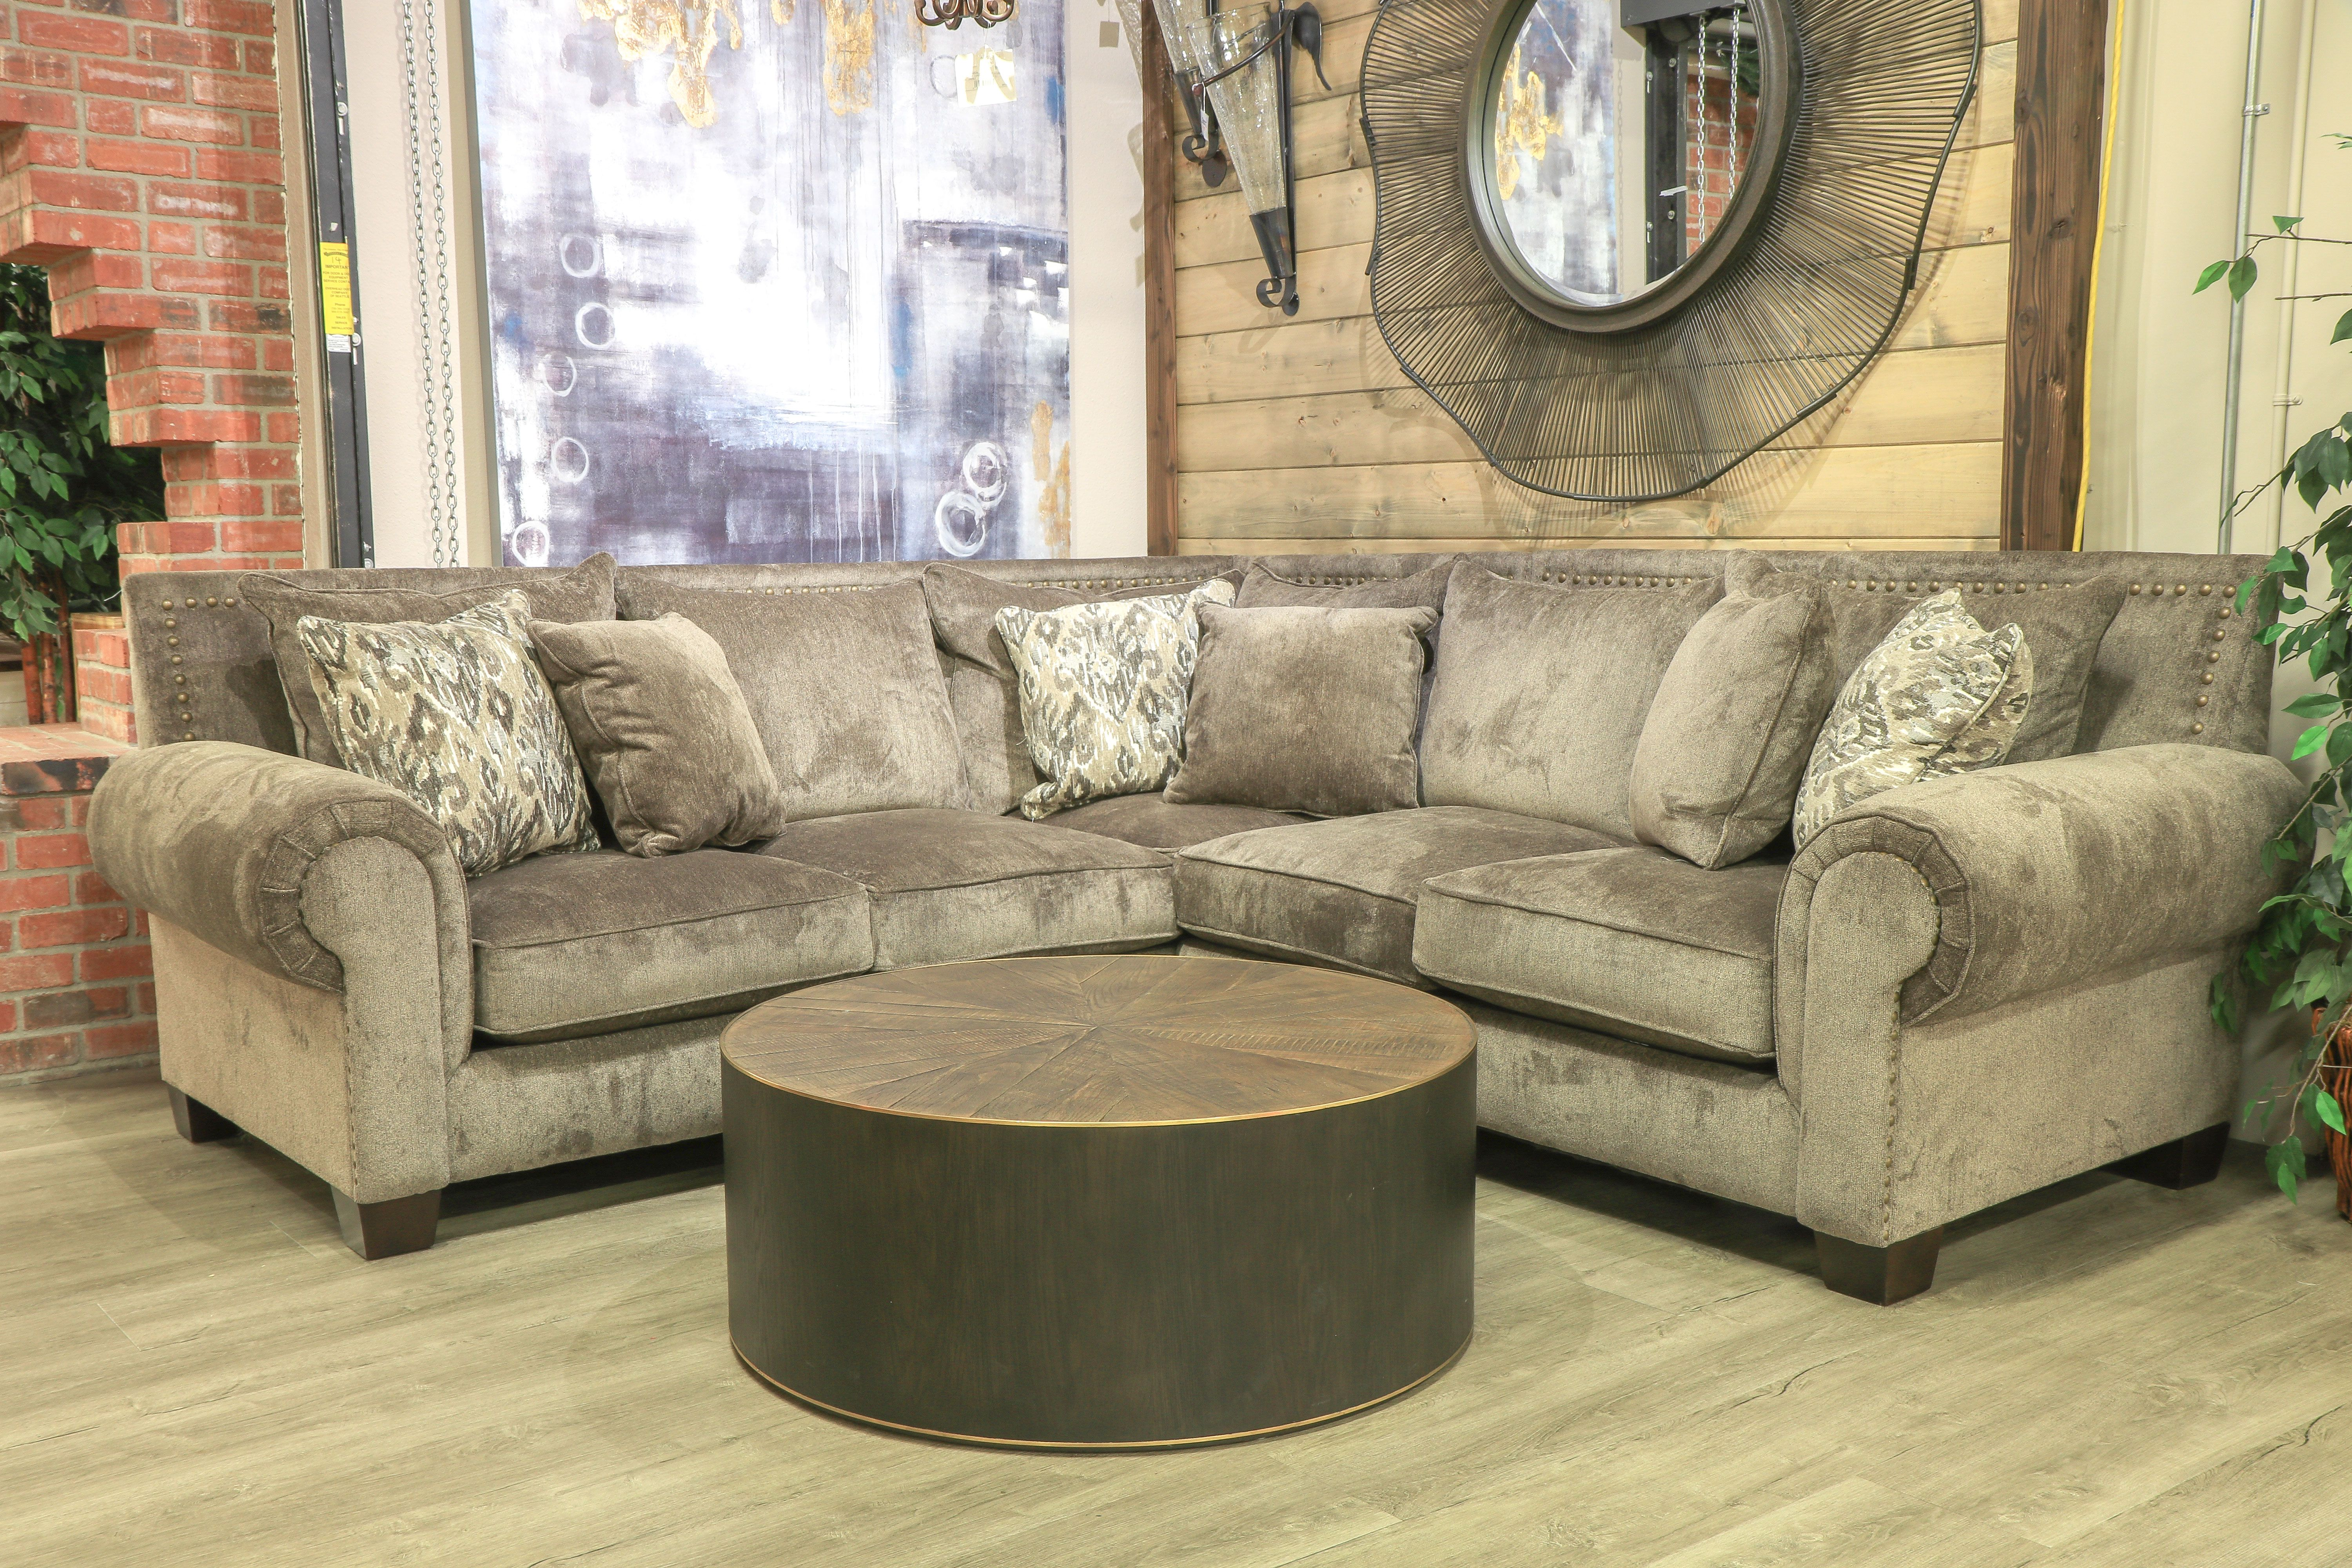 Del Mar Larado 2pc Sectional By England Furniture Company Available